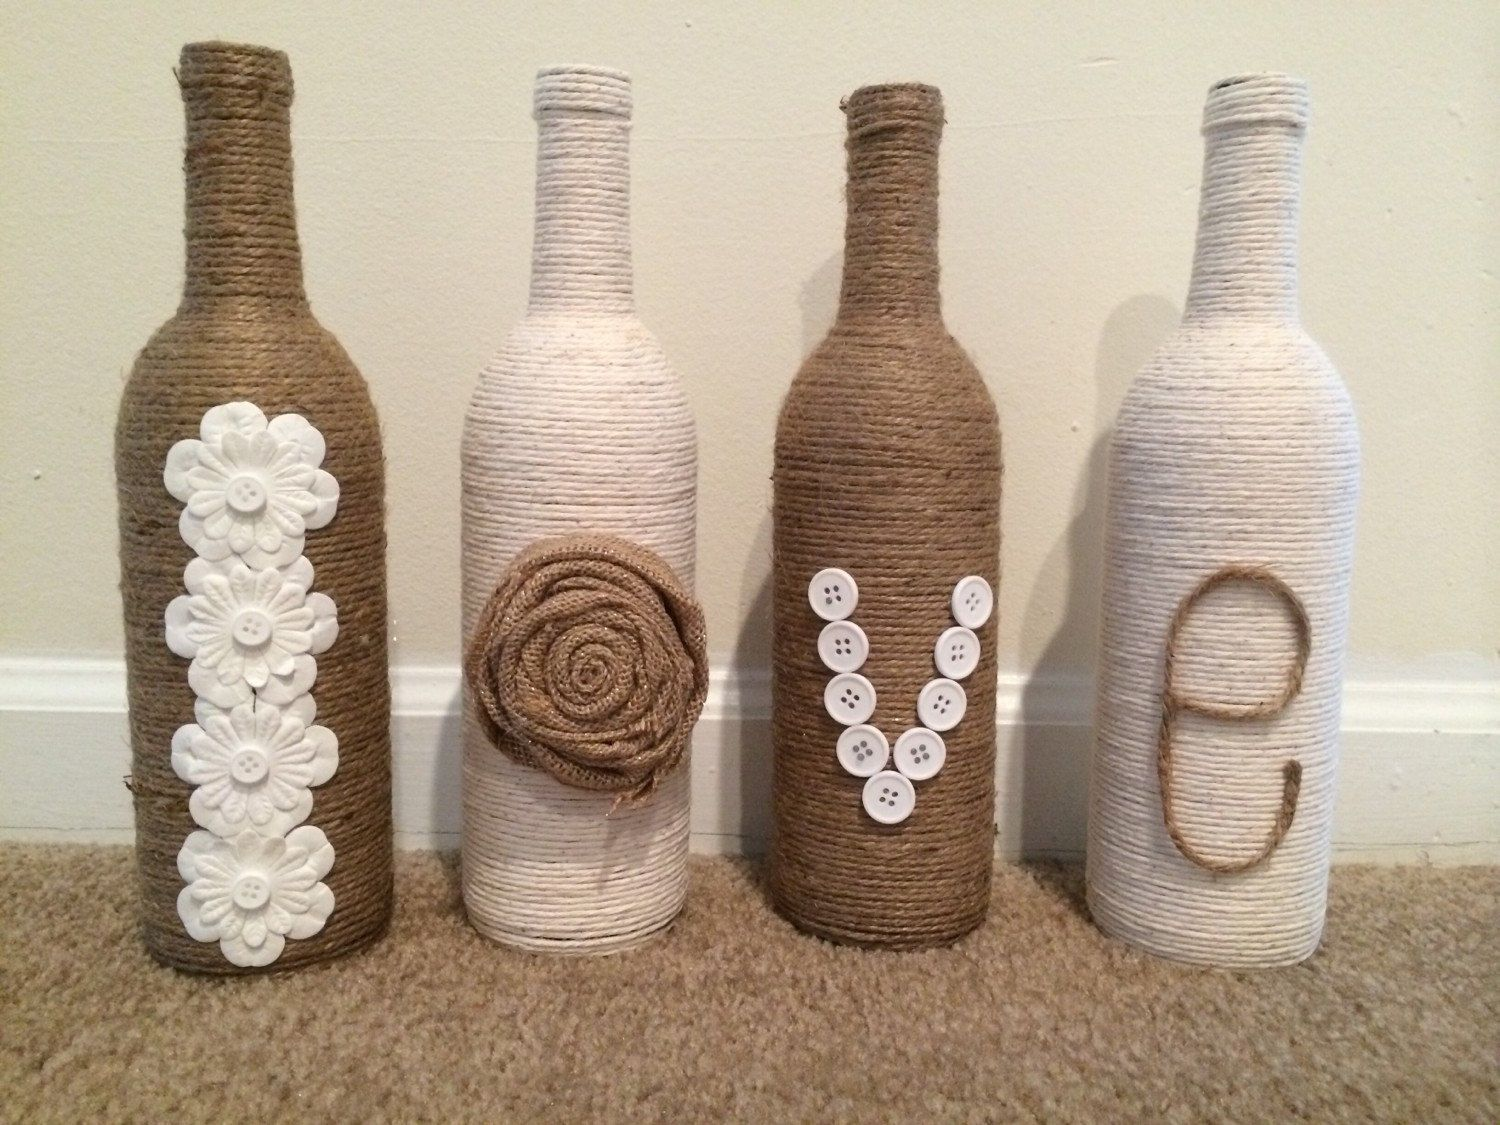 Wine Bottle Decor Love Twine Wrapped Wine Bottle Decorfindalittledream On Etsy